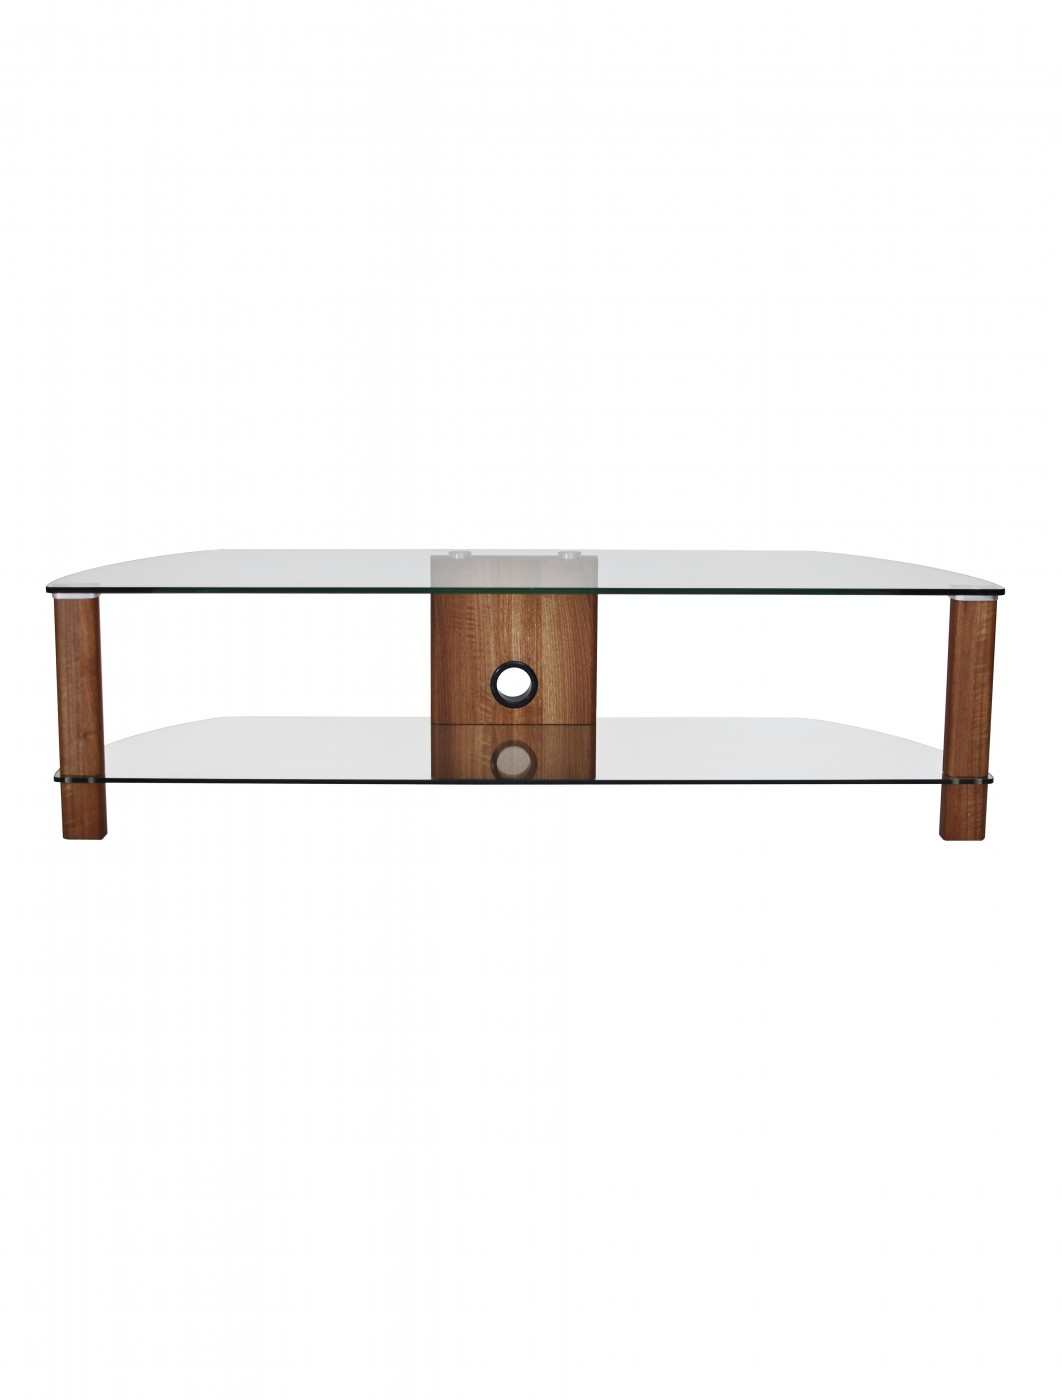 Alphason Century 1500mm TV Stand ADCE1500-WAL